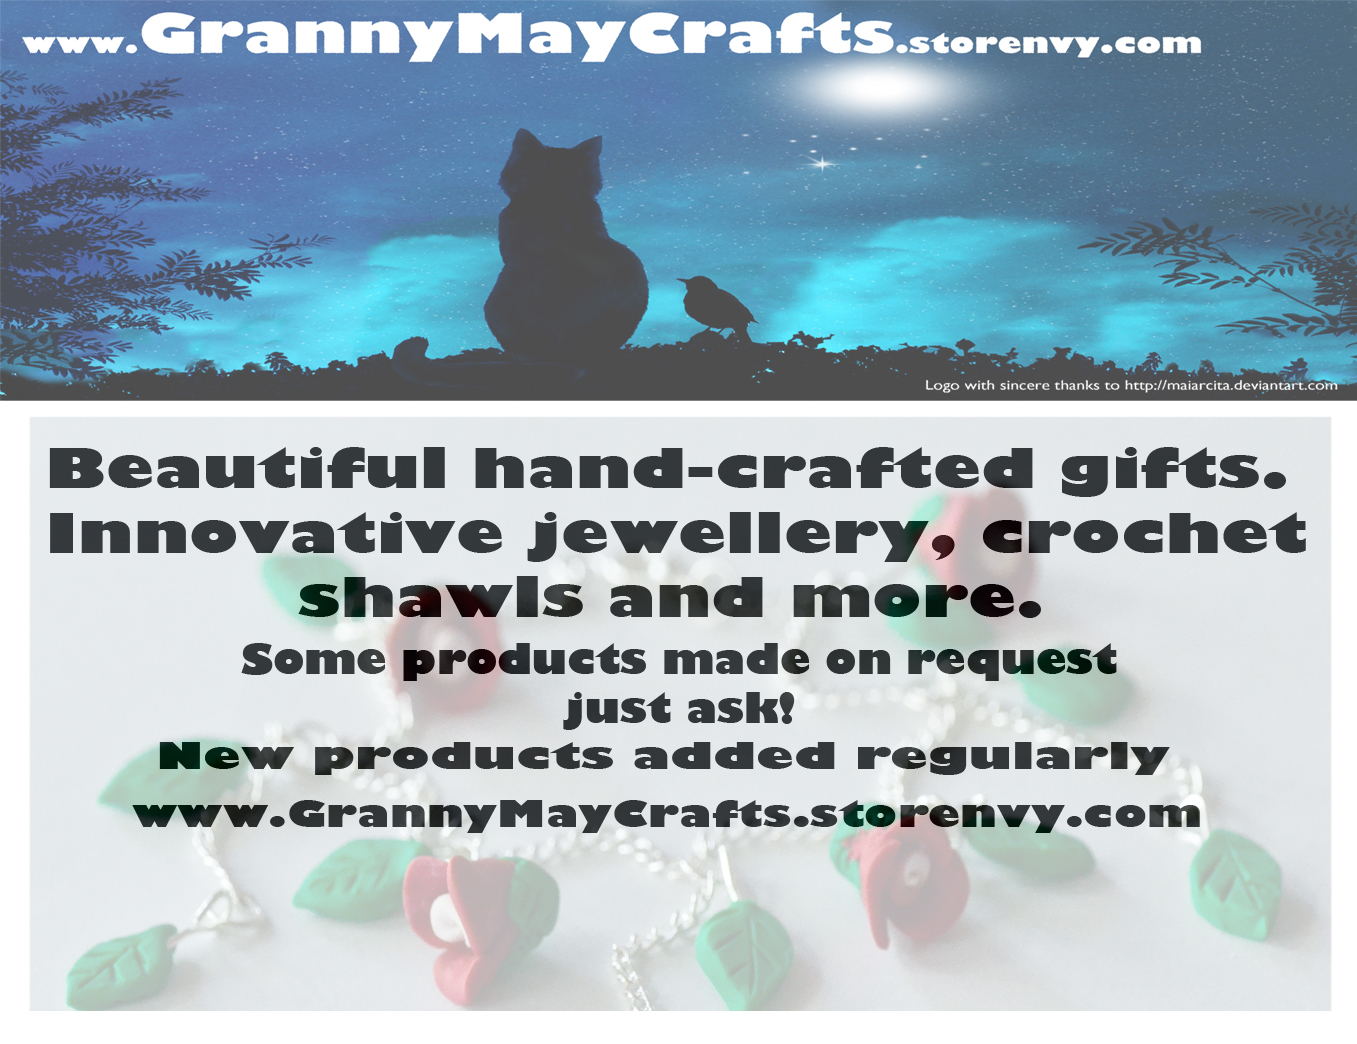 Granny May Crafts